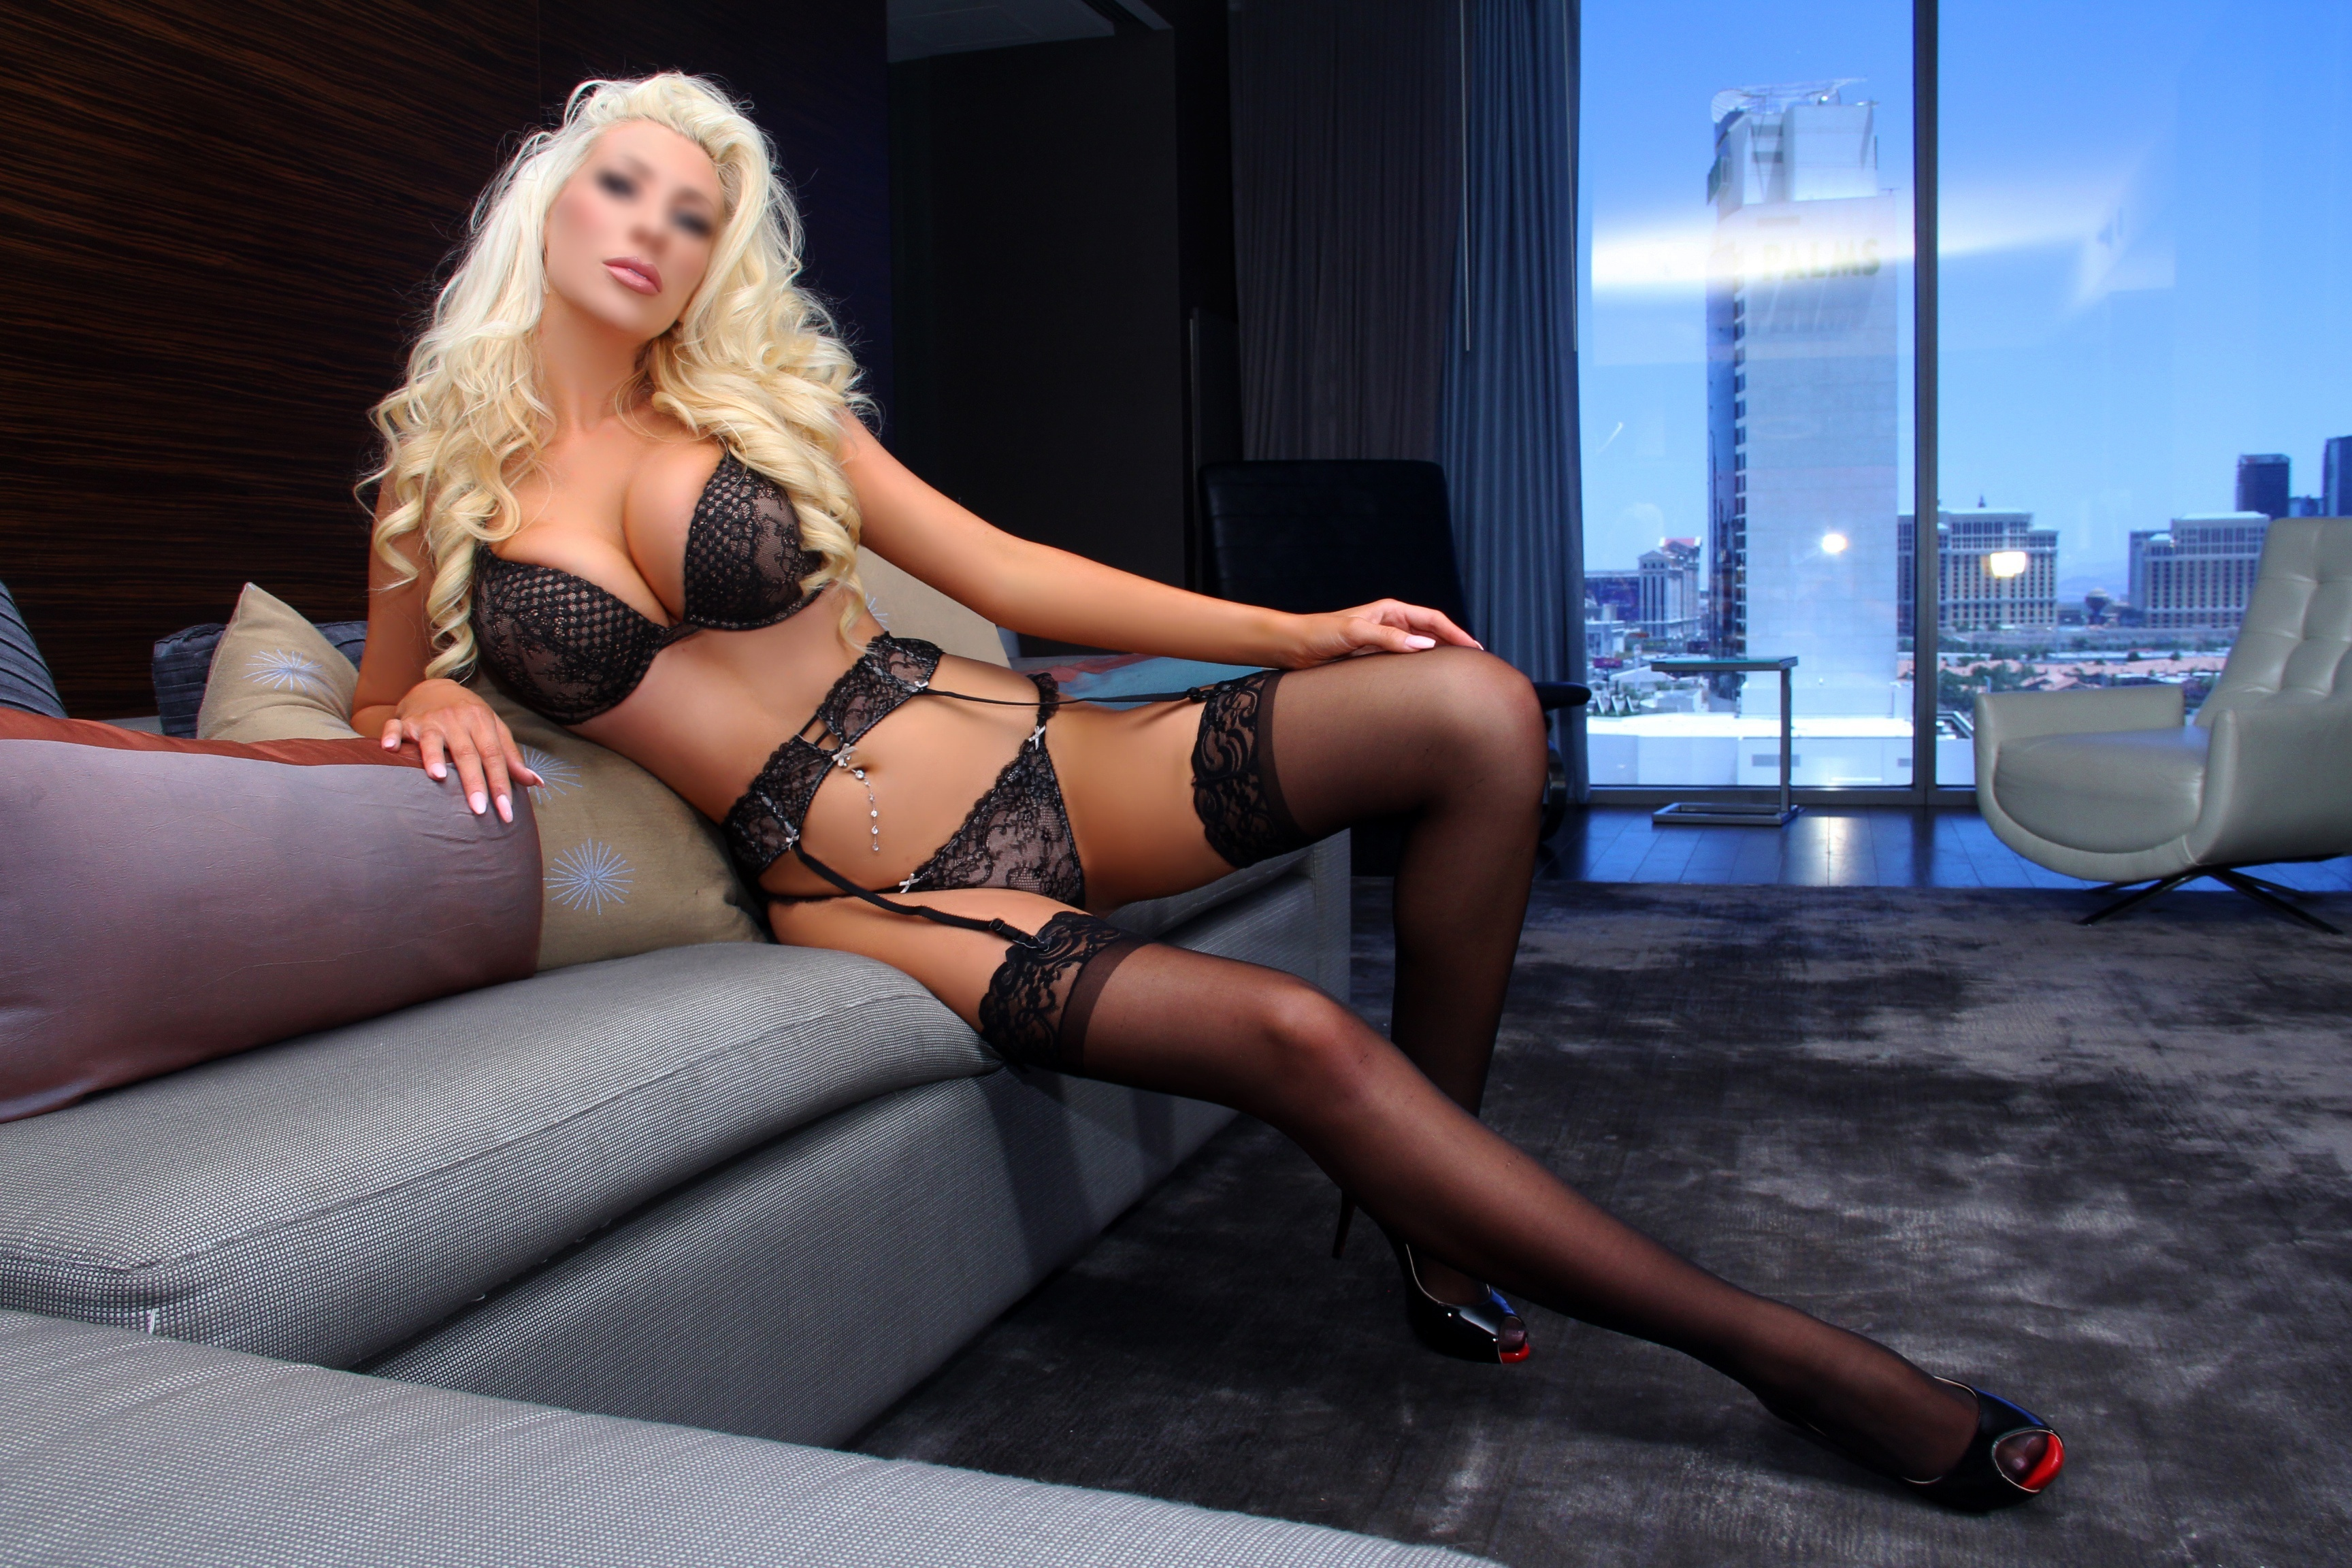 Call girls direct to your room las vegas